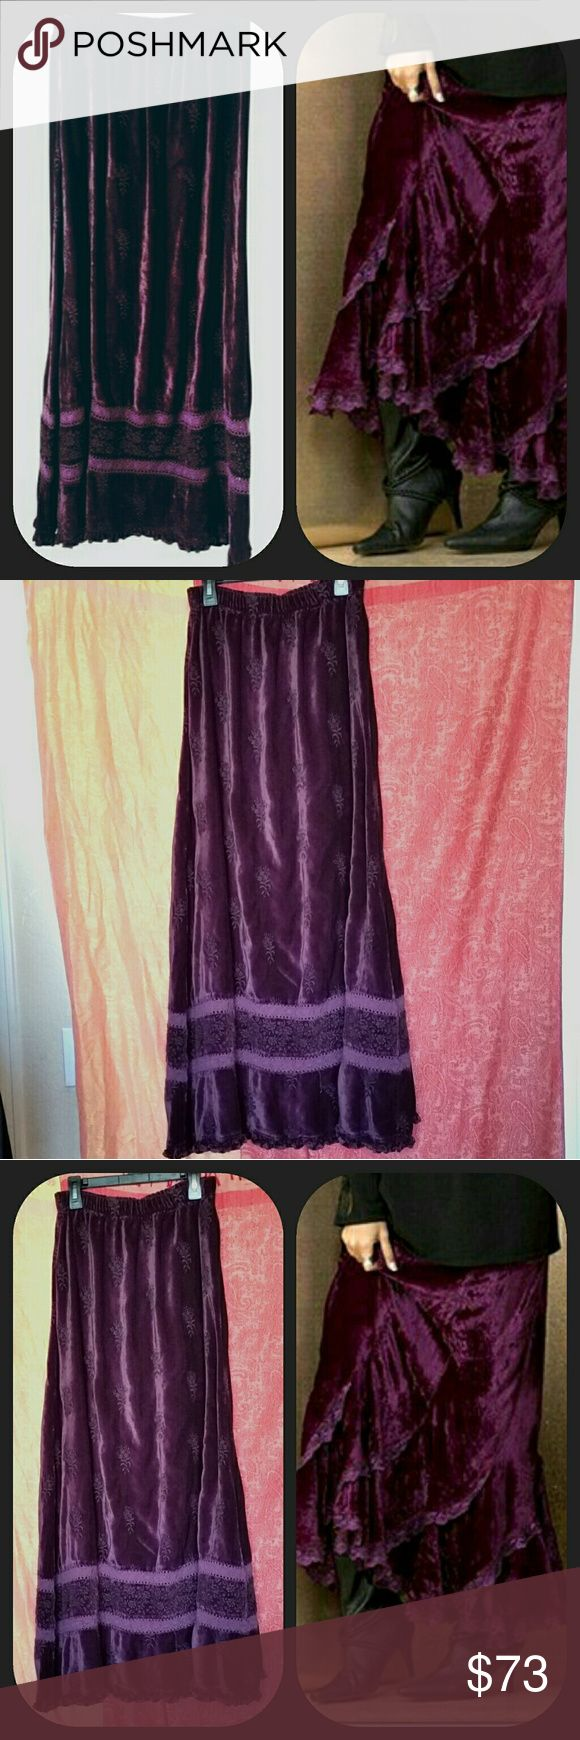 "CP Shades Maxi Skirt Deep Wine Ruffled Velvet Very Boho Steam Punk Victorian Goth. CP Shades Maxi Skirt. Deep Wine Colored Ruffled Velvet Skirt. Lightly embossed or burnout maroon,velvet with small hem ruffle. Elastic waist. Size M Measurements taken flat: Waistband 13"" - 16""  Length 38"" C P Shades Skirts Maxi"